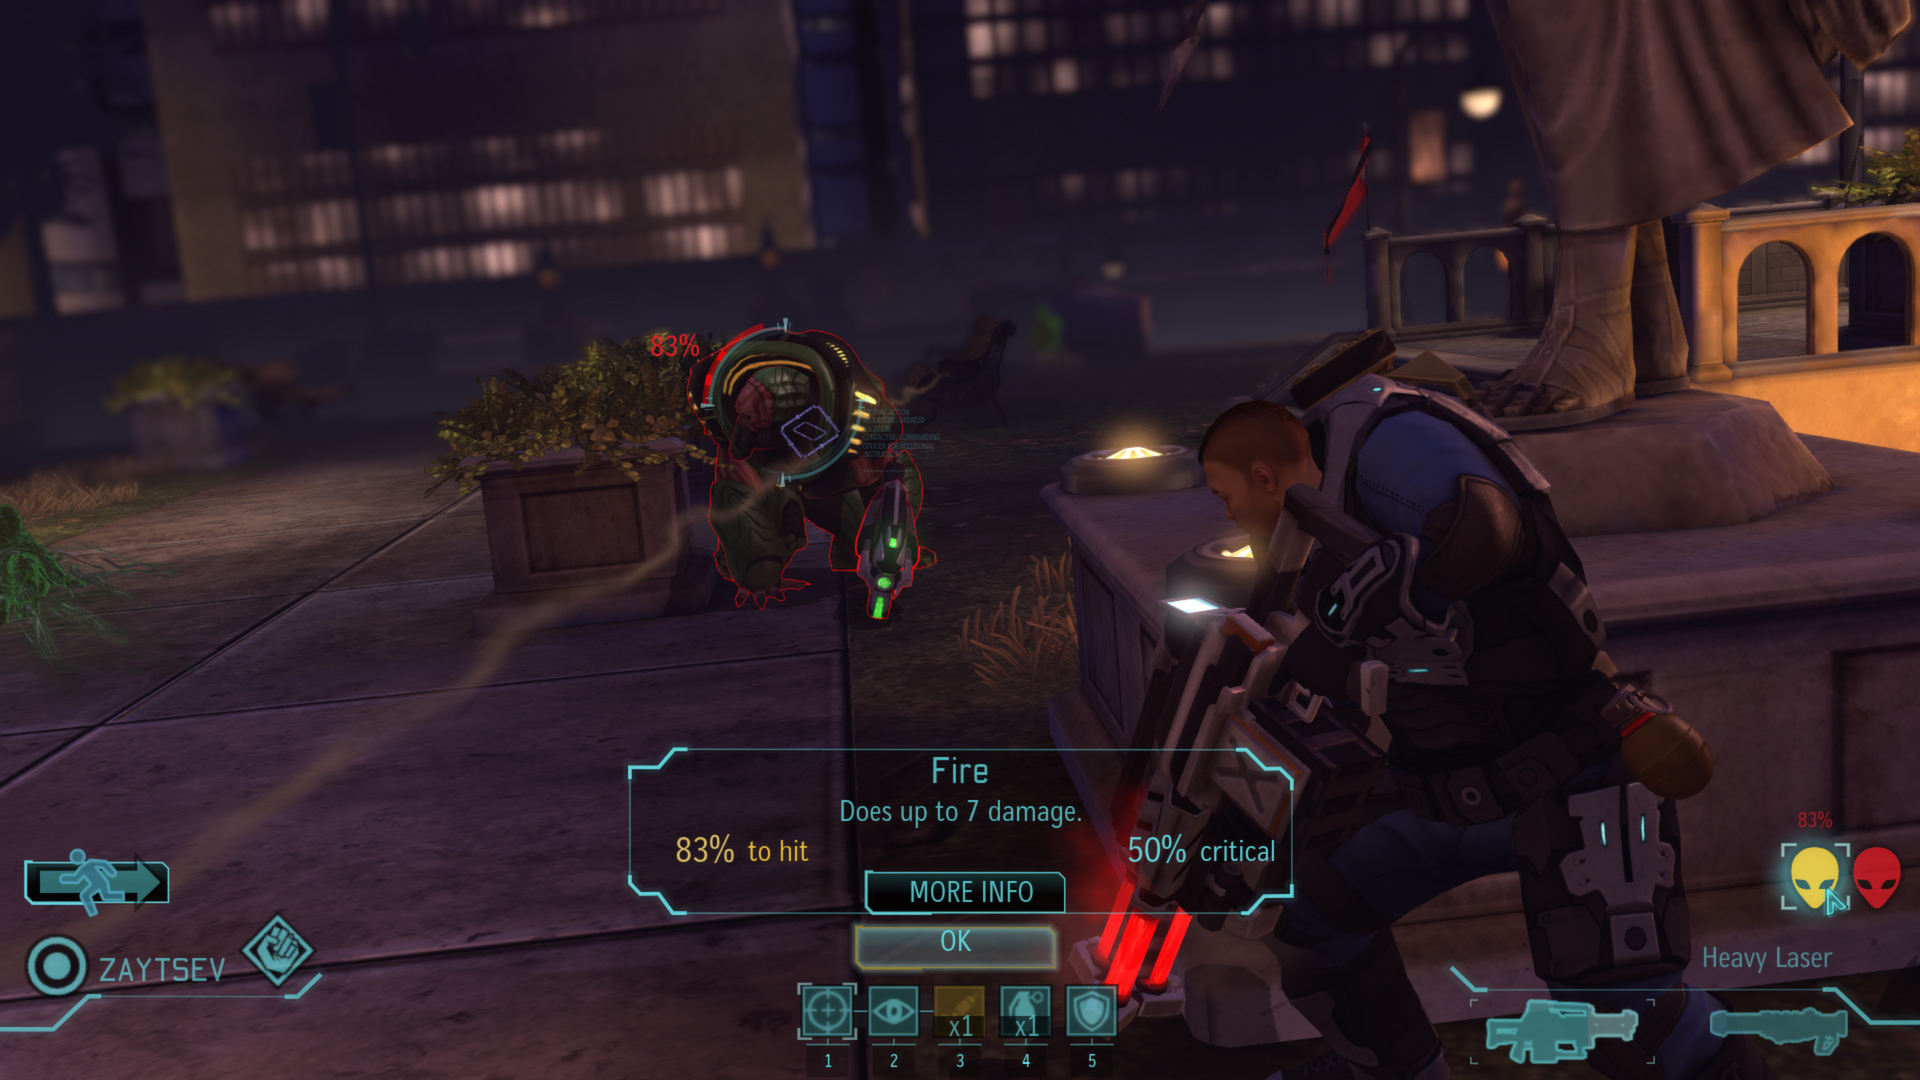 'XCOM: Enemy Unknown' will continue to see DLC this year